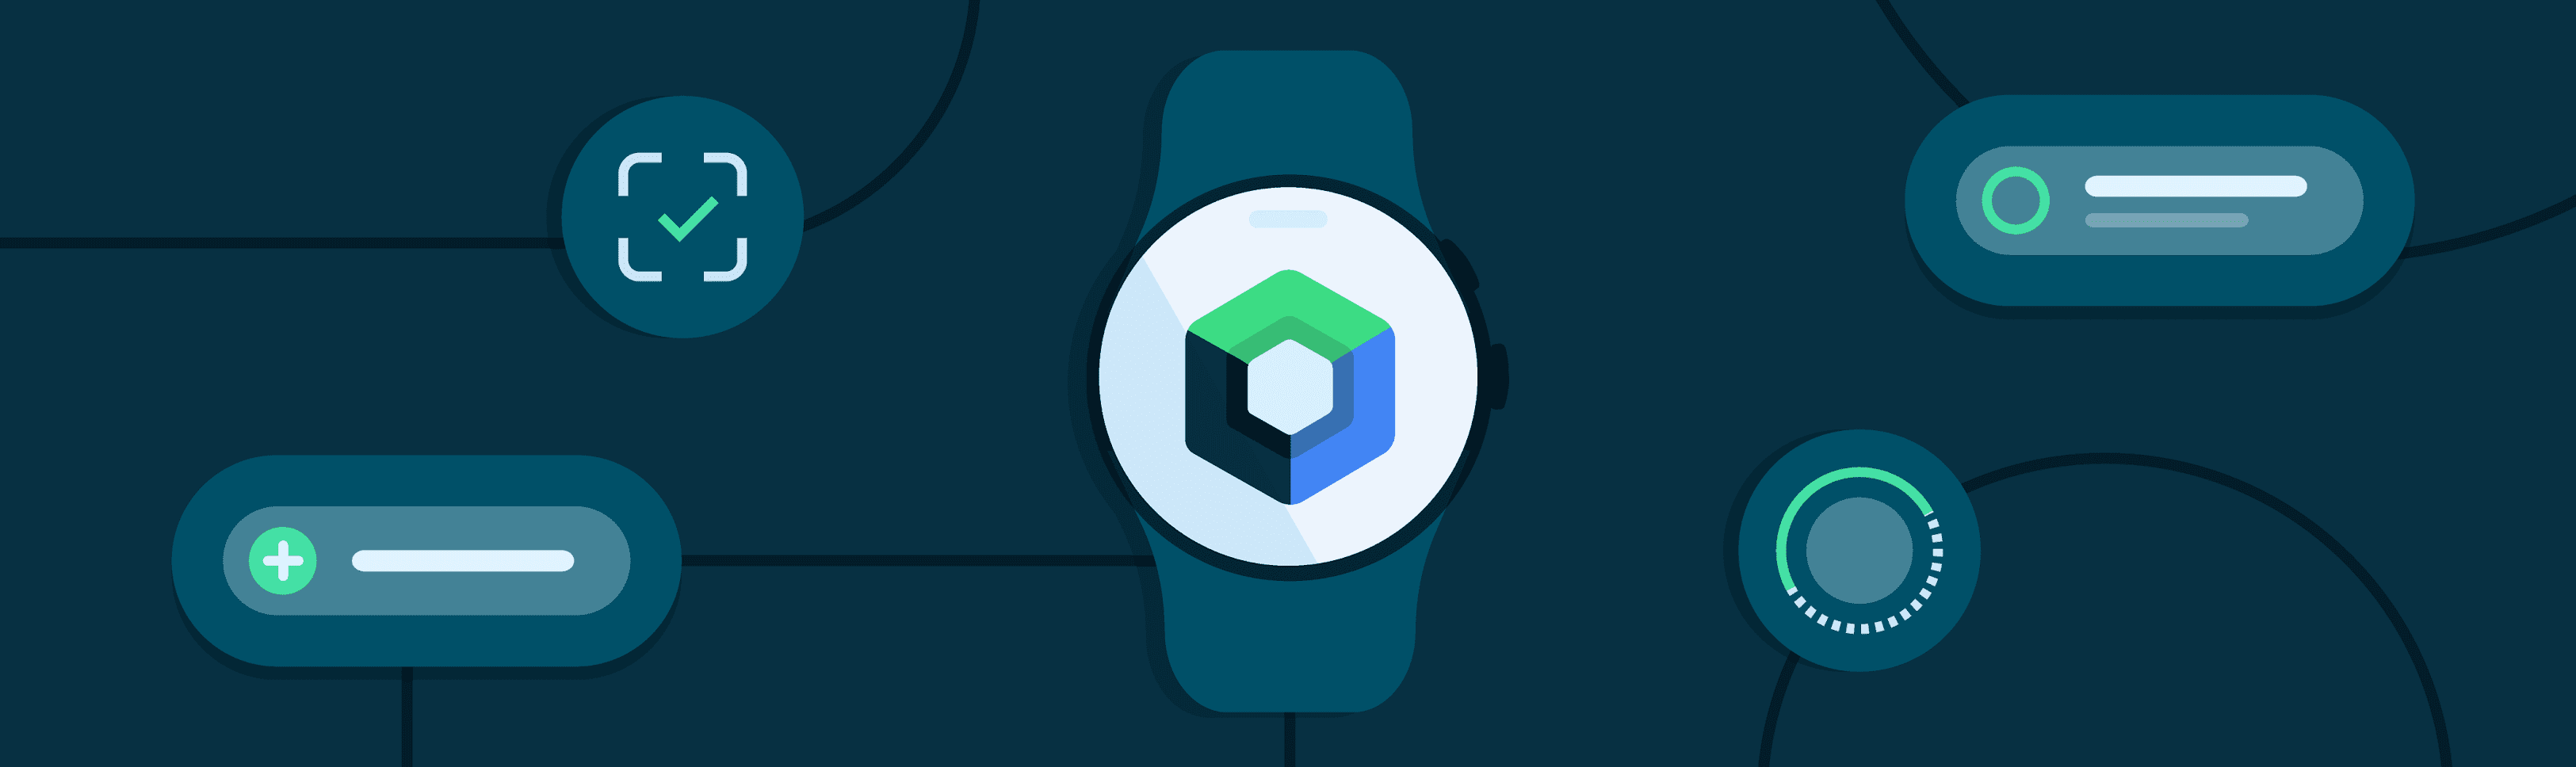 Blue background with illustration of watch